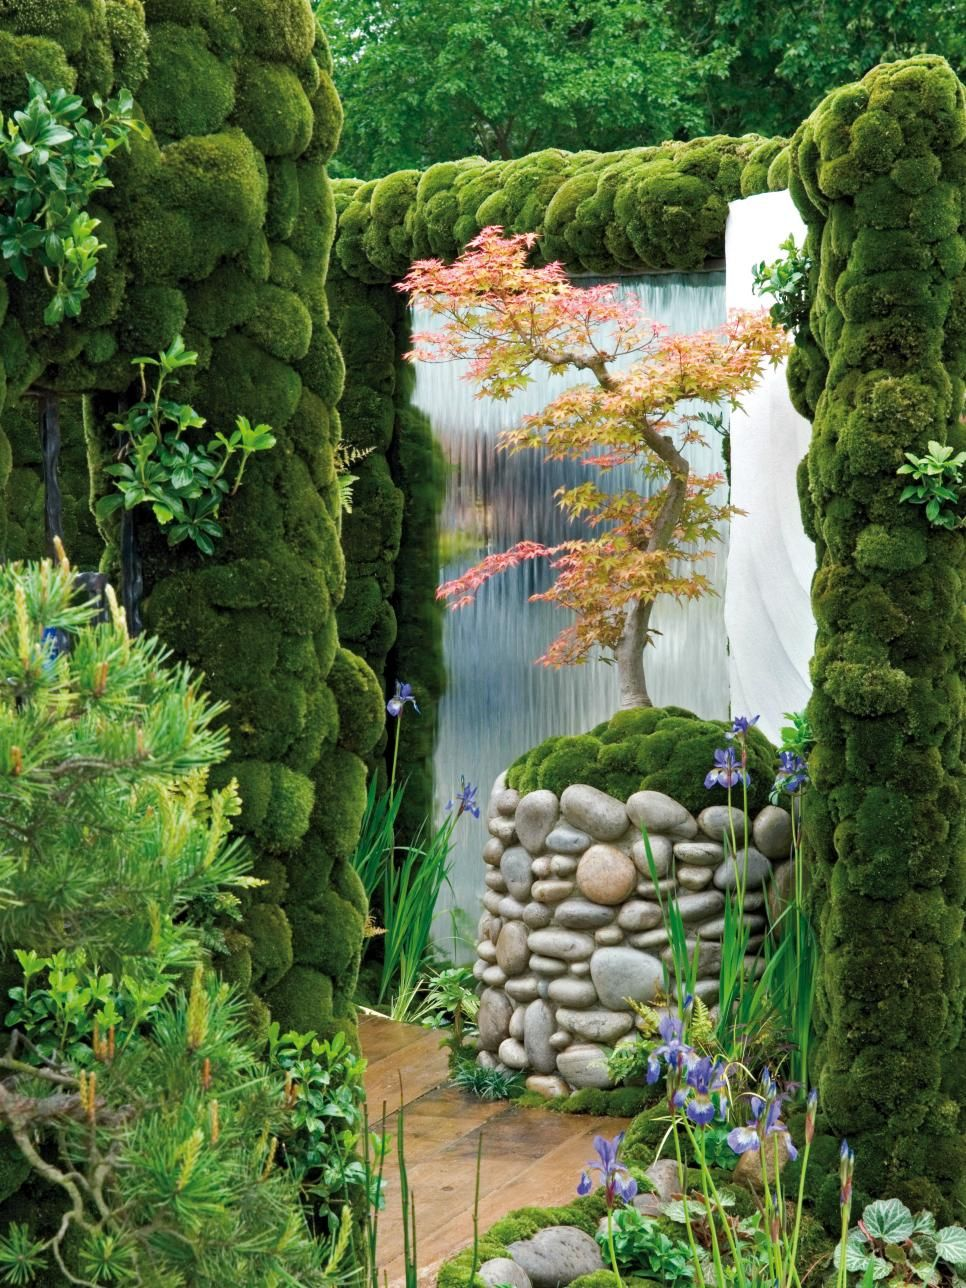 A Miniature Mountain Landscape With Lush Greenery And A Waterfall Is  Recreated In This Asian Garden. A Japanese Maple Tree Adds Color Among The  Greenery.